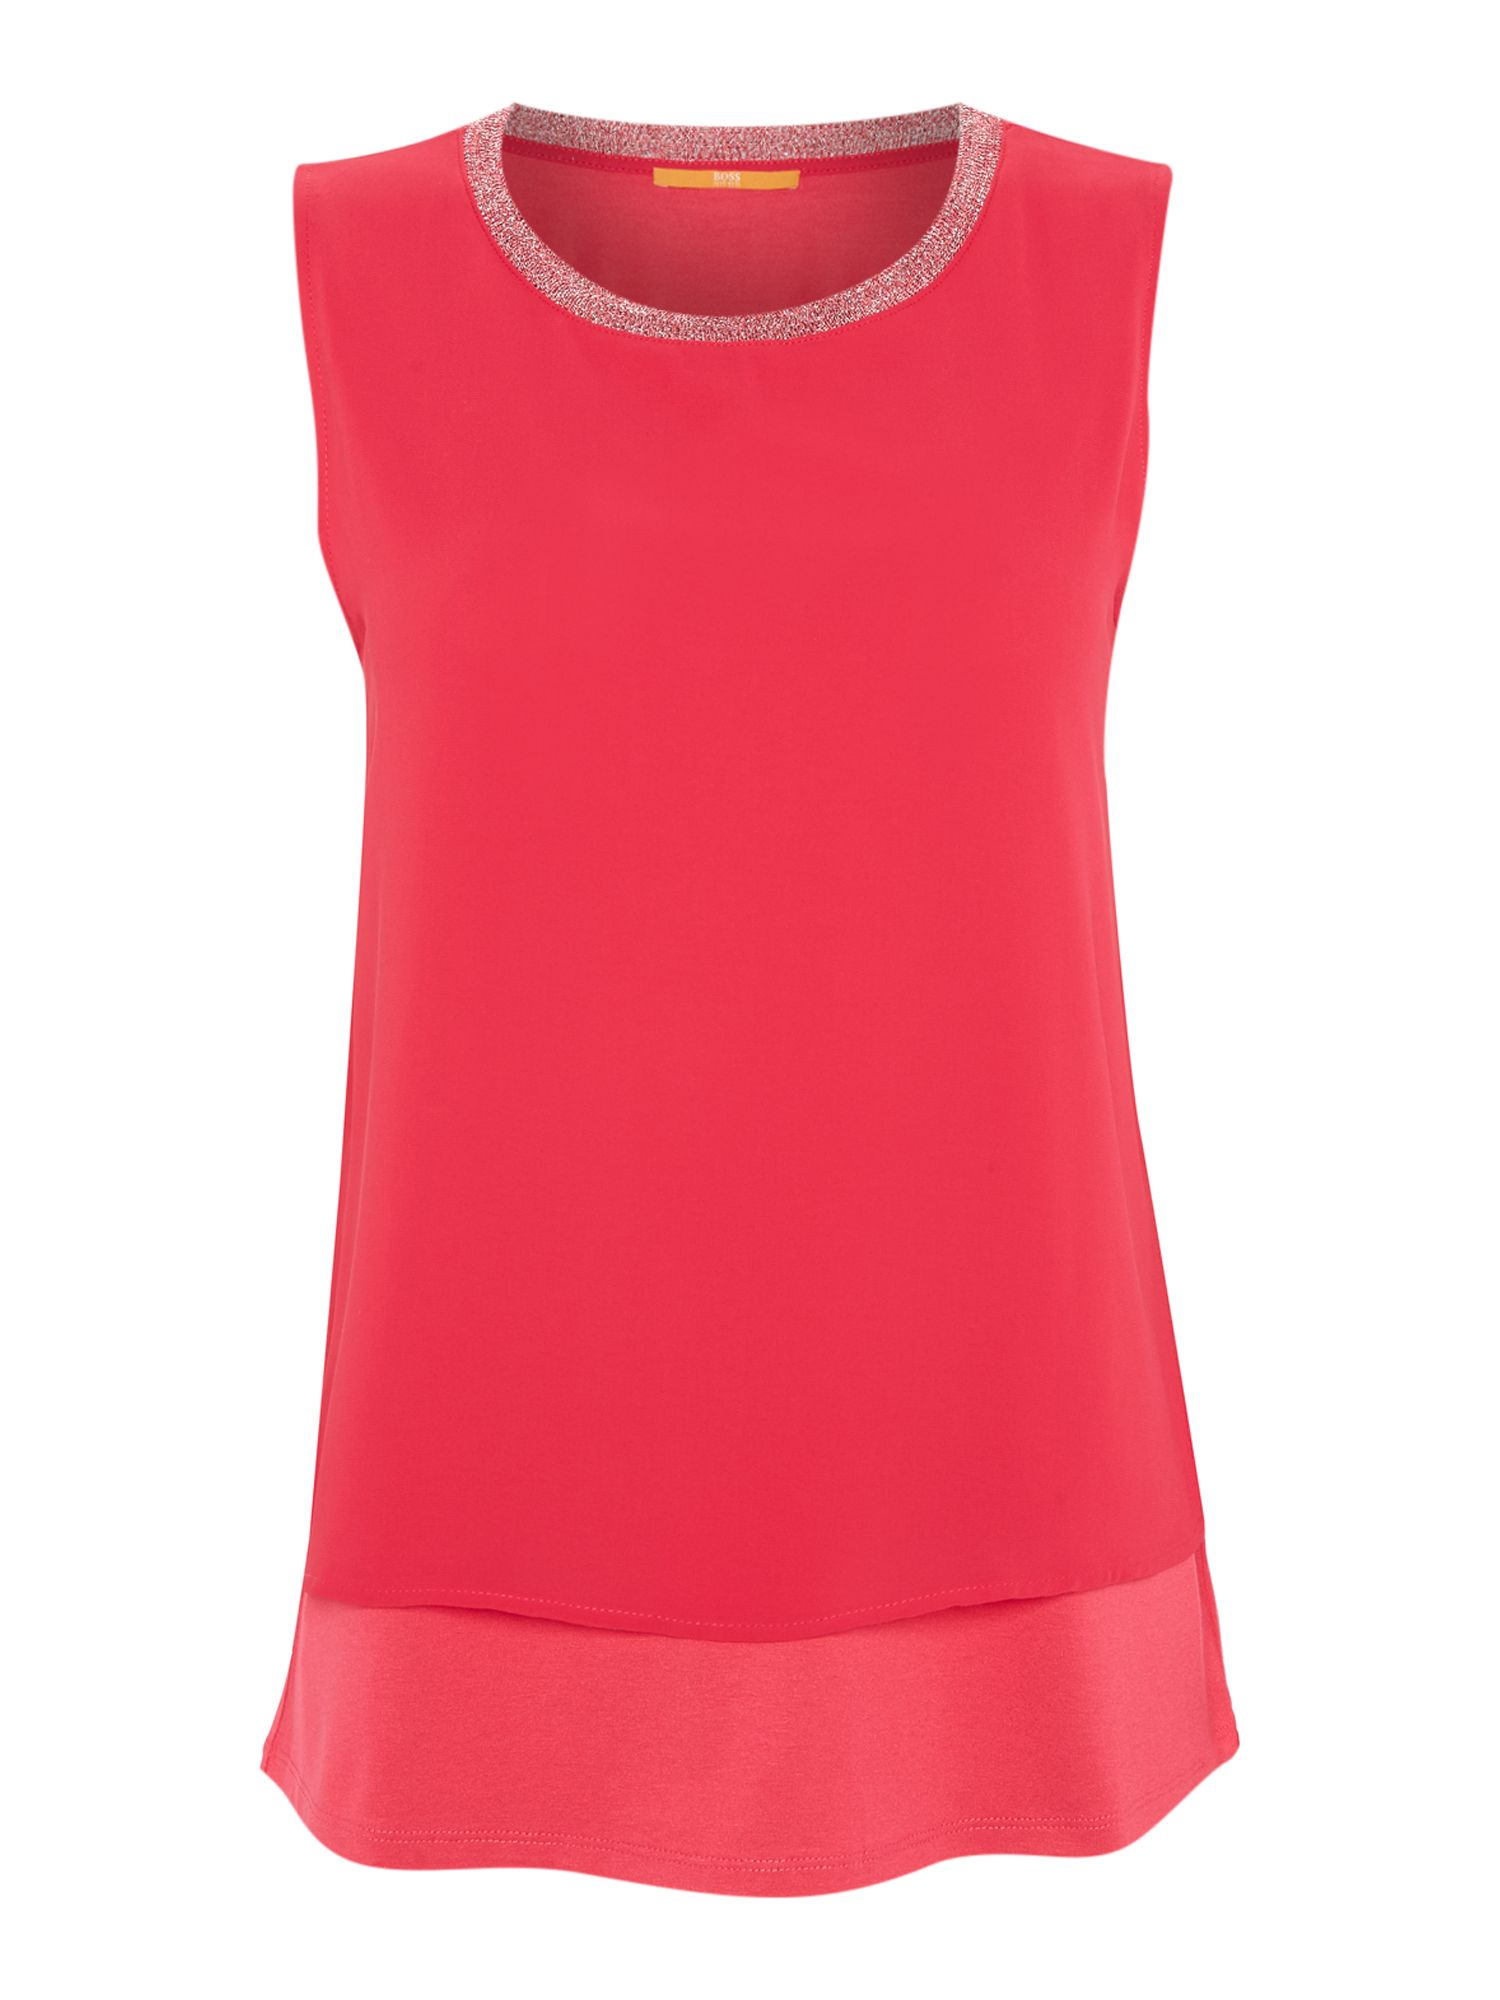 Hugo Boss Topia Embellished Neck Blouse in Bright Pink, Pink